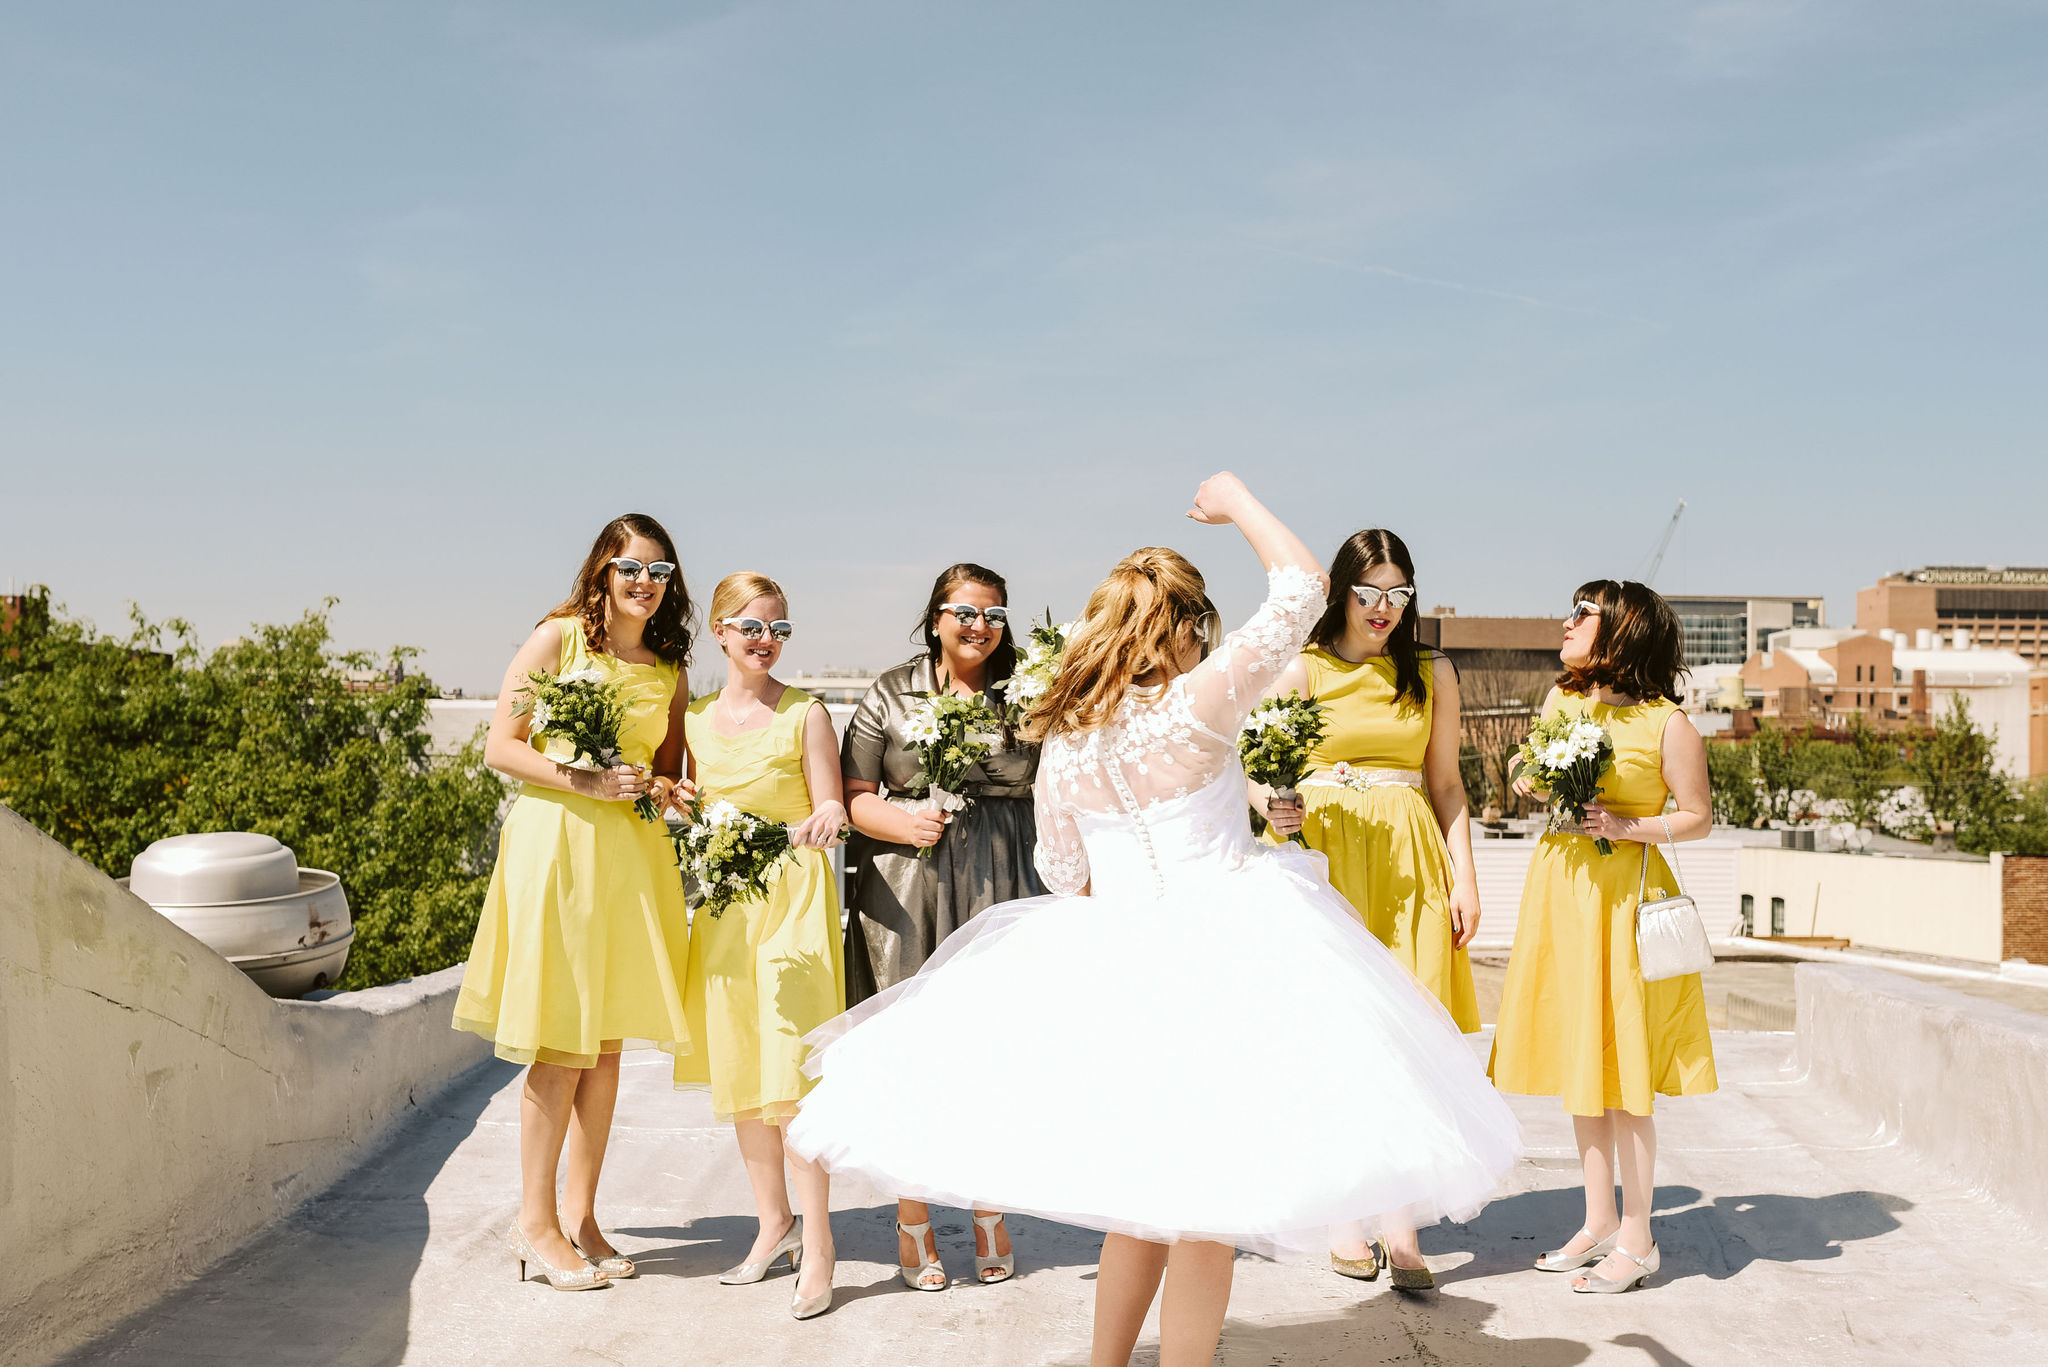 Baltimore, Church Wedding, Maryland Wedding Photographer, Vintage, Classic, 50s Style, Bride Twirling on Rooftop, Bride with Bridesmaids on Sunny Day